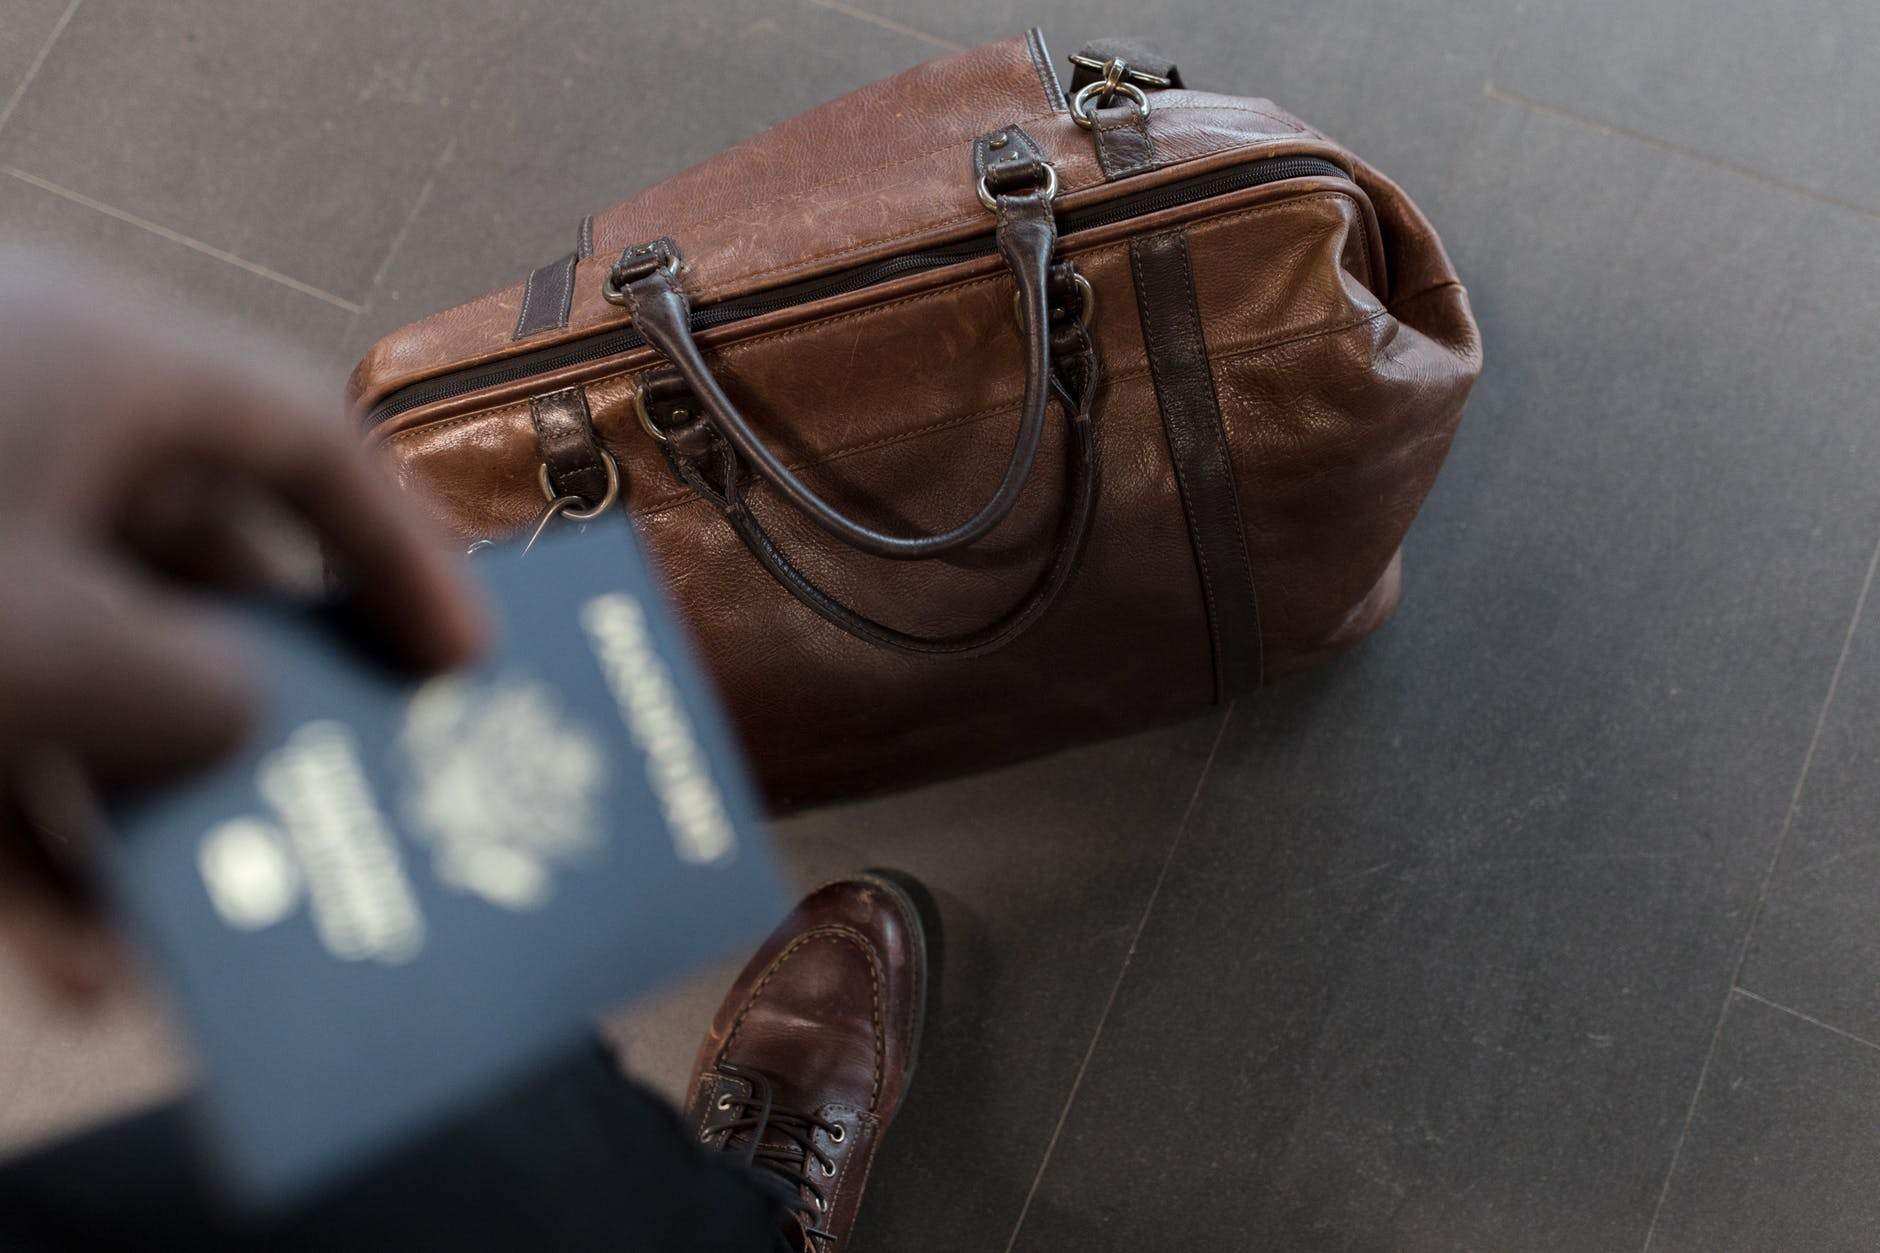 a man holding a passport while his bag is on the ground